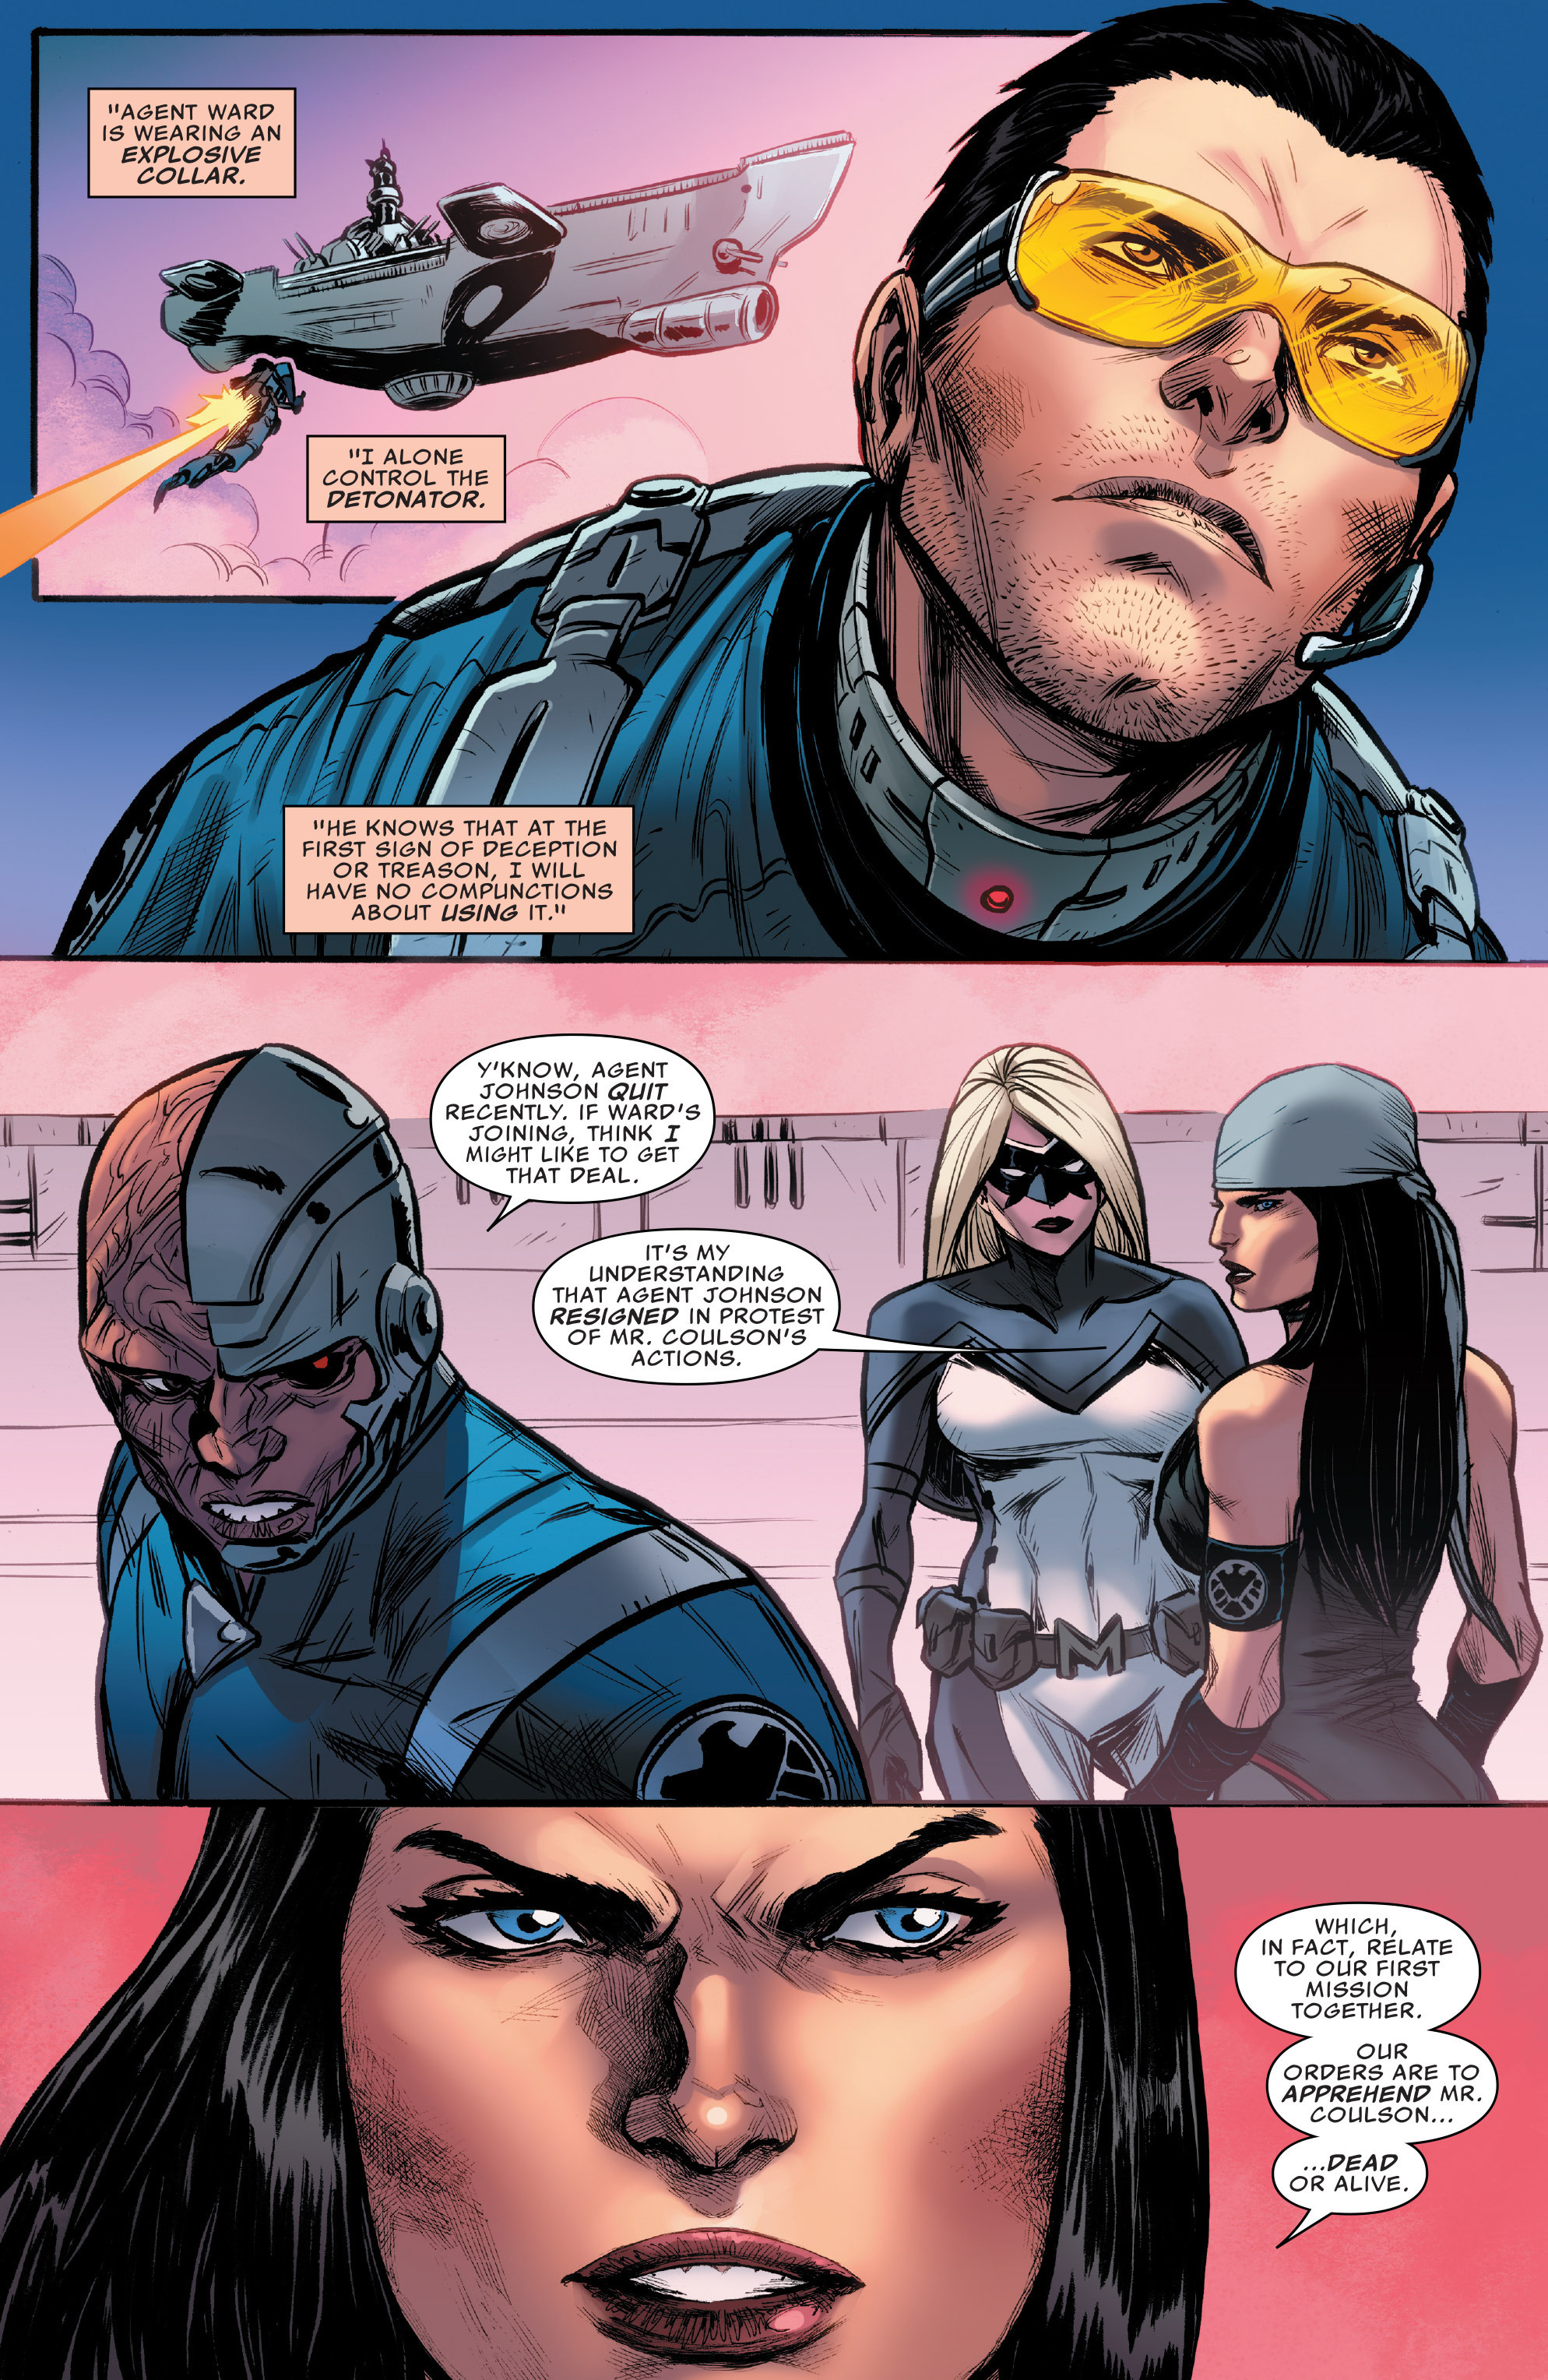 Read online Agents of S.H.I.E.L.D. comic -  Issue #9 - 5